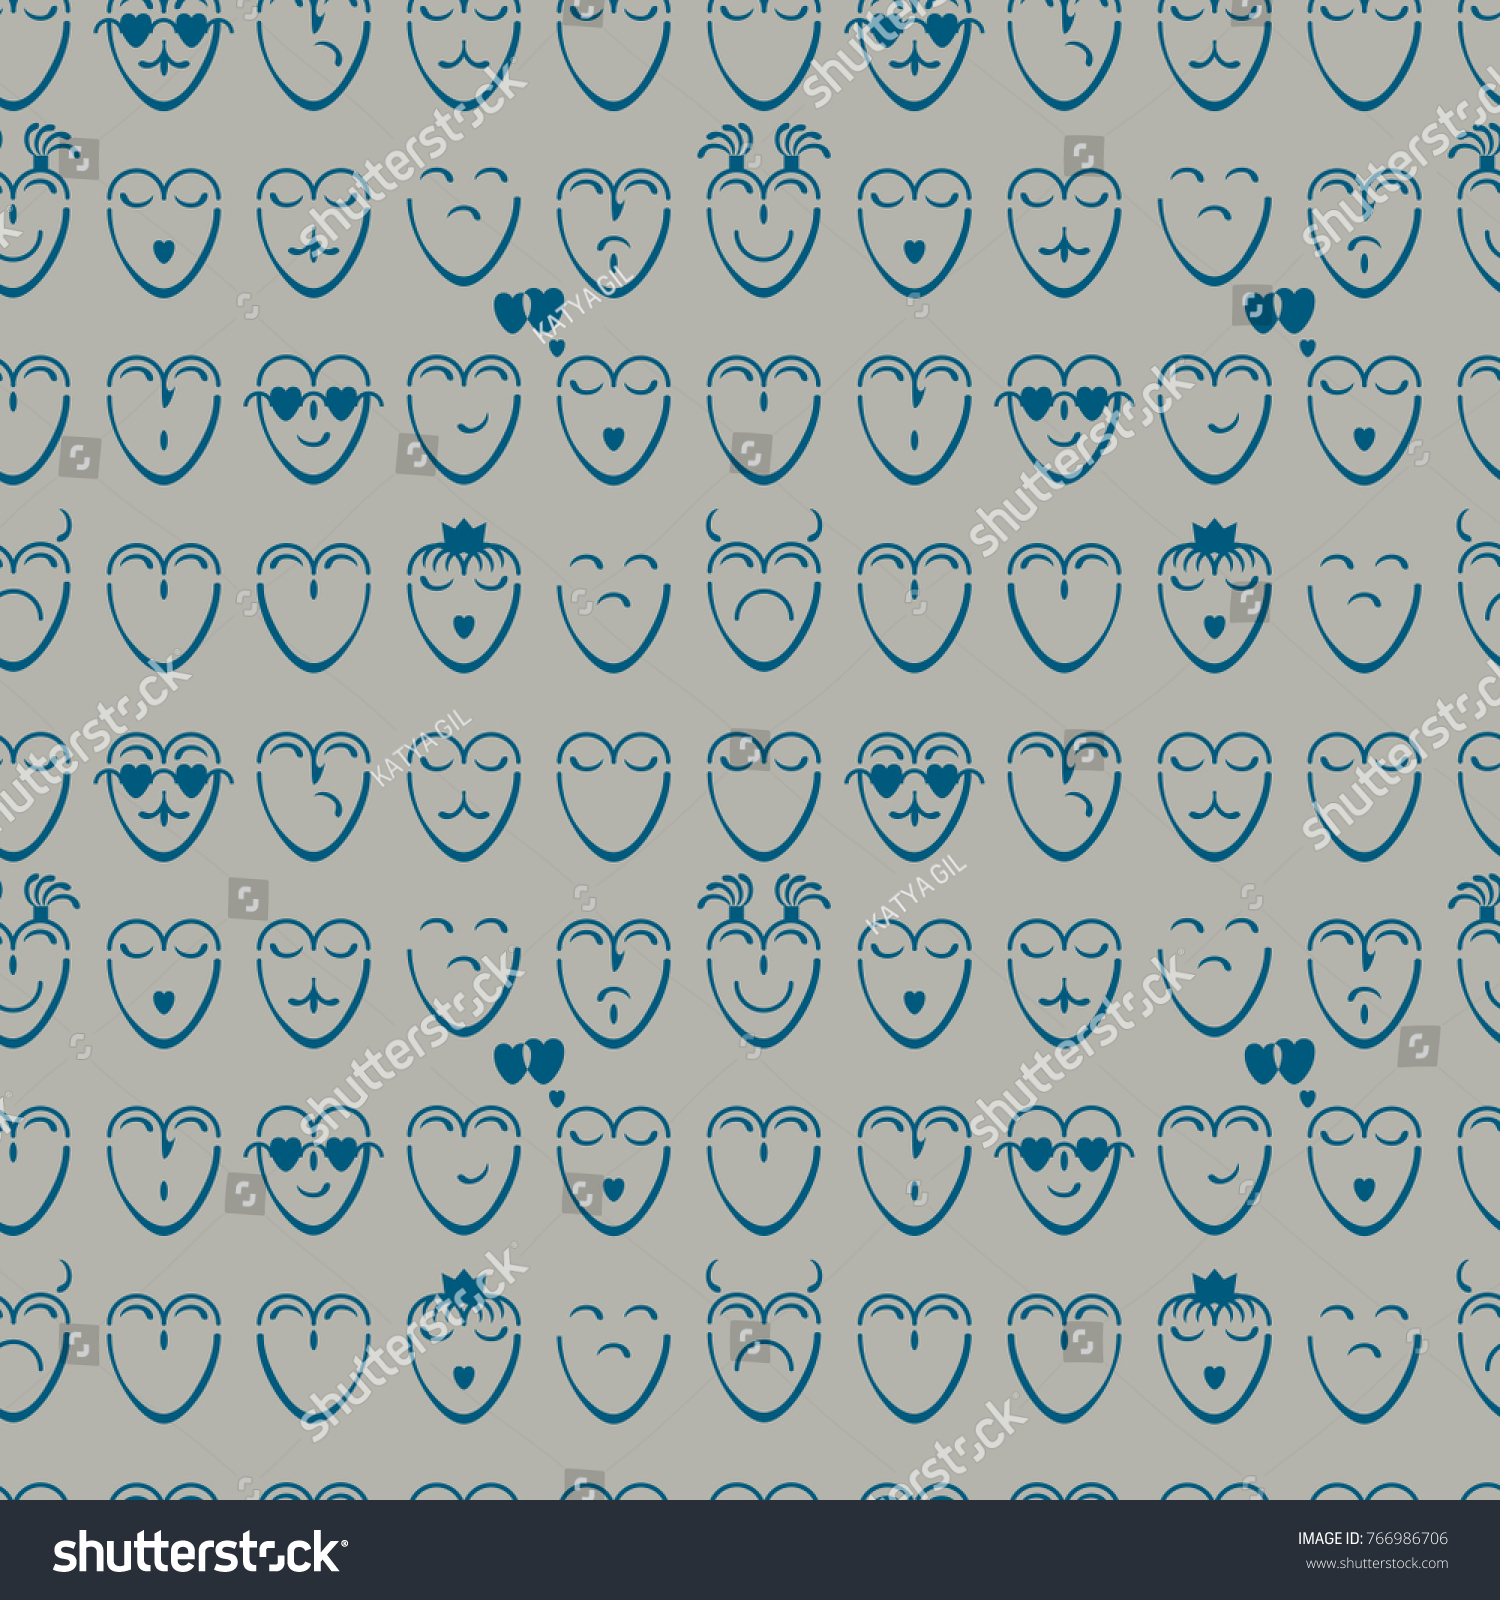 Seamless Pattern Of Blue Hearts With Different Moods On A Blue Background Nice Look